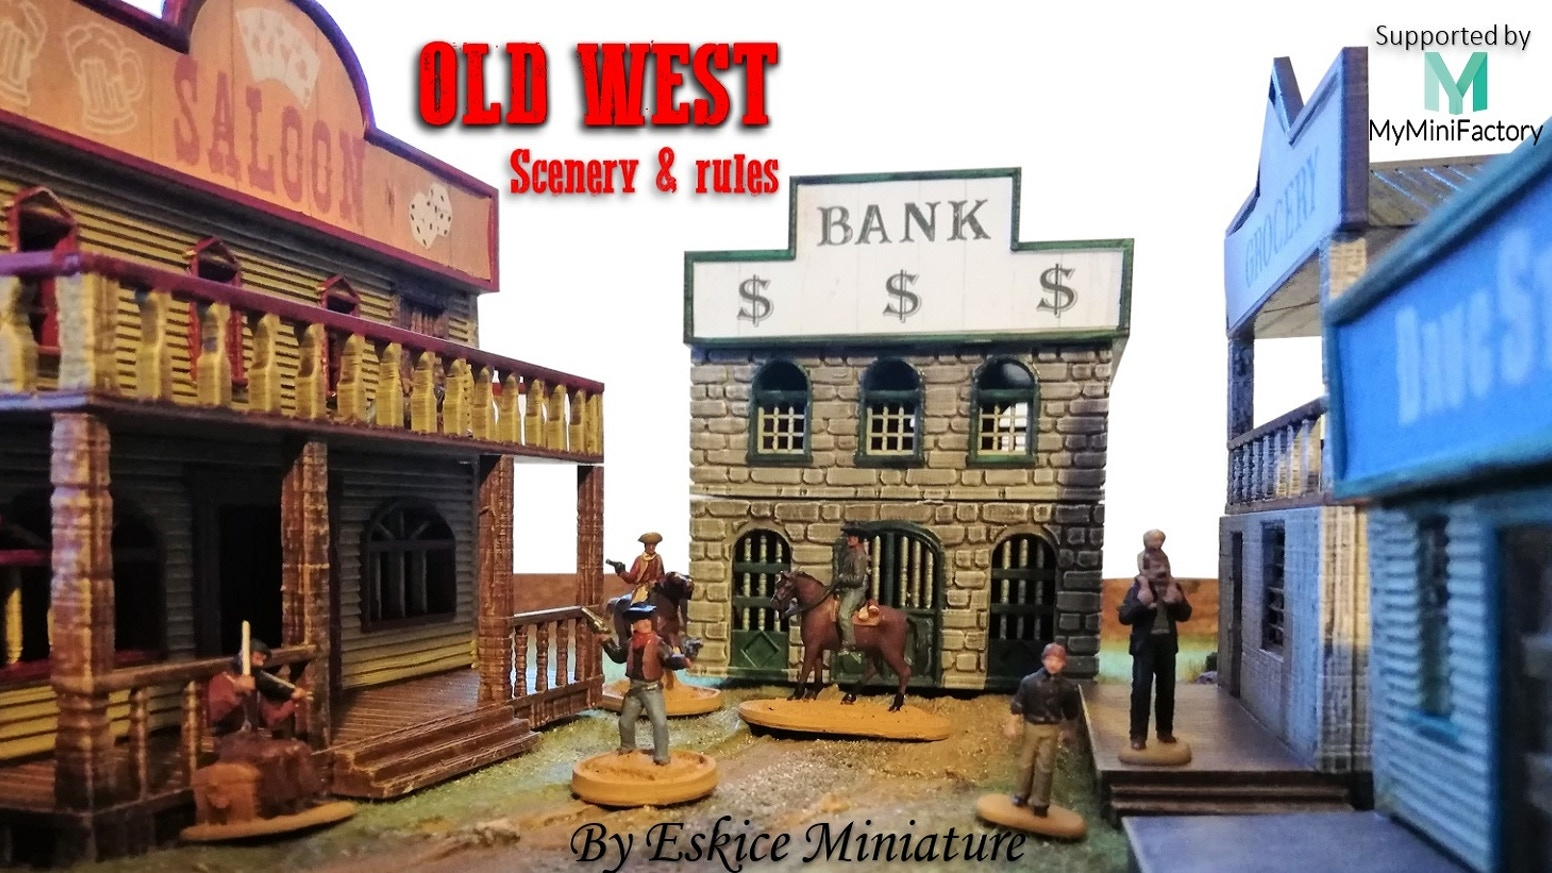 OLD WEST - 3d Scenery & Skirmish game by Eskice Miniature